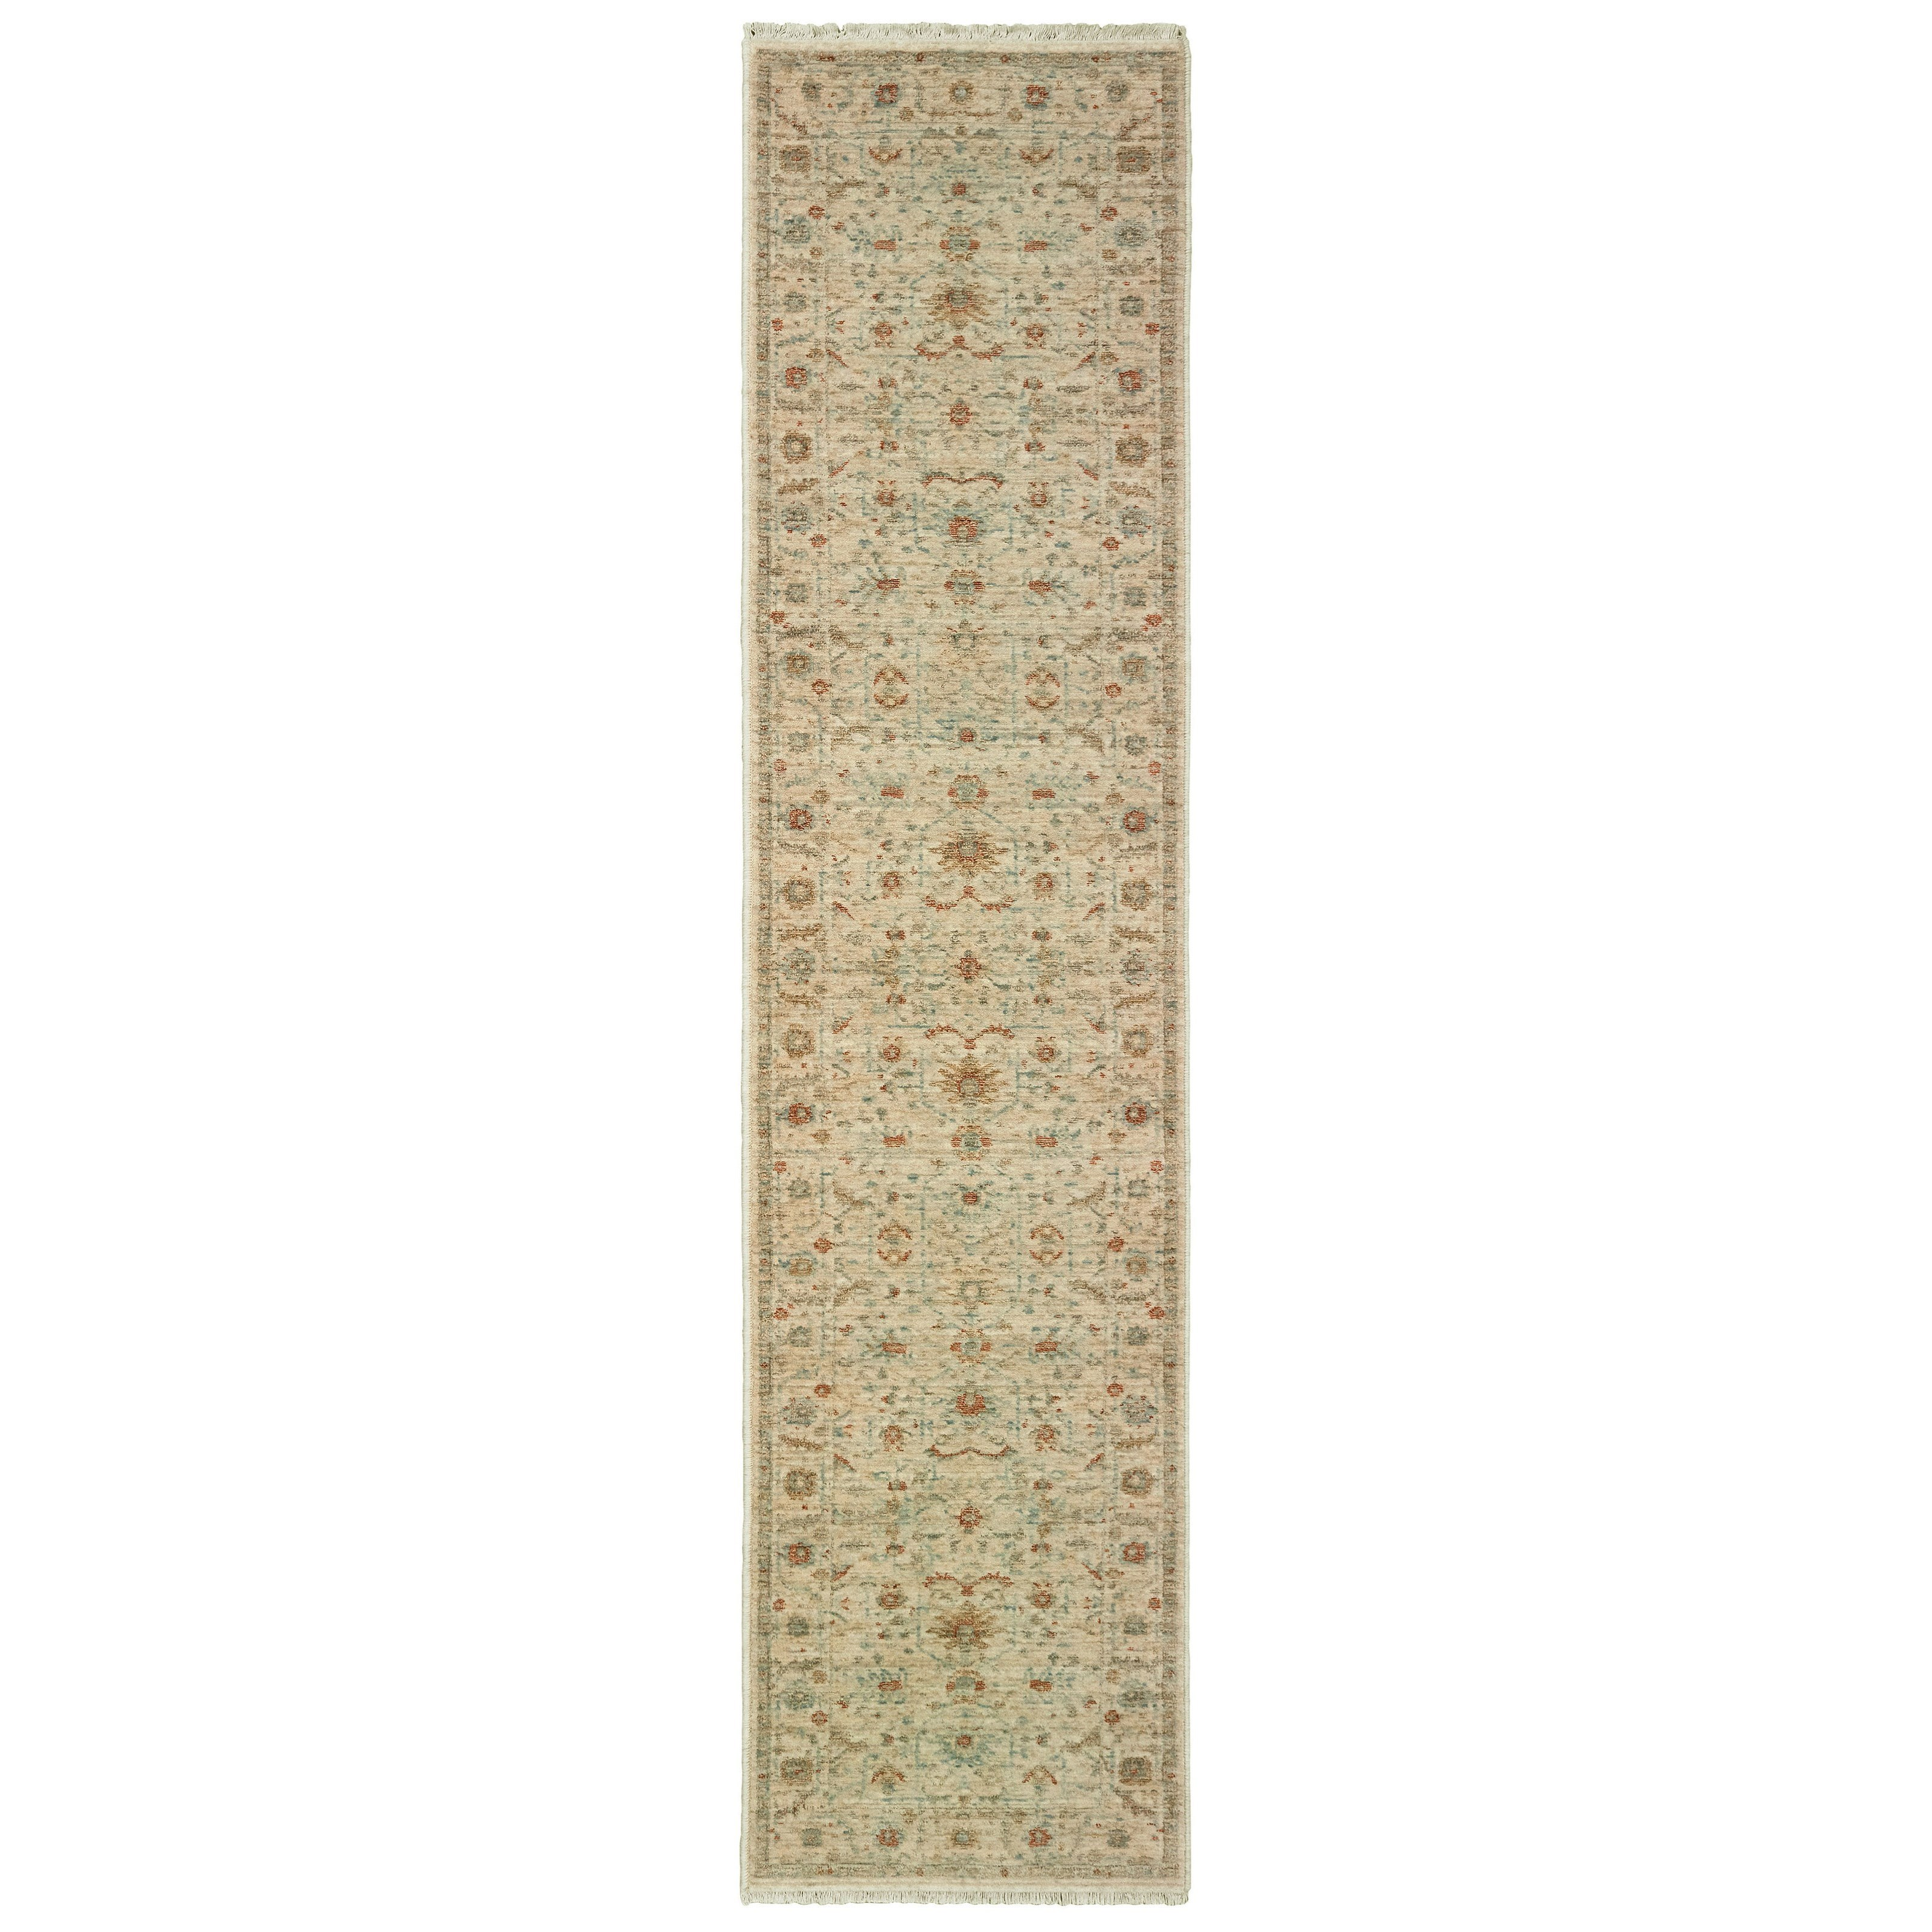 "Anatolia 2' 3"" X 10' Runner Rug by Oriental Weavers at Steger's Furniture"